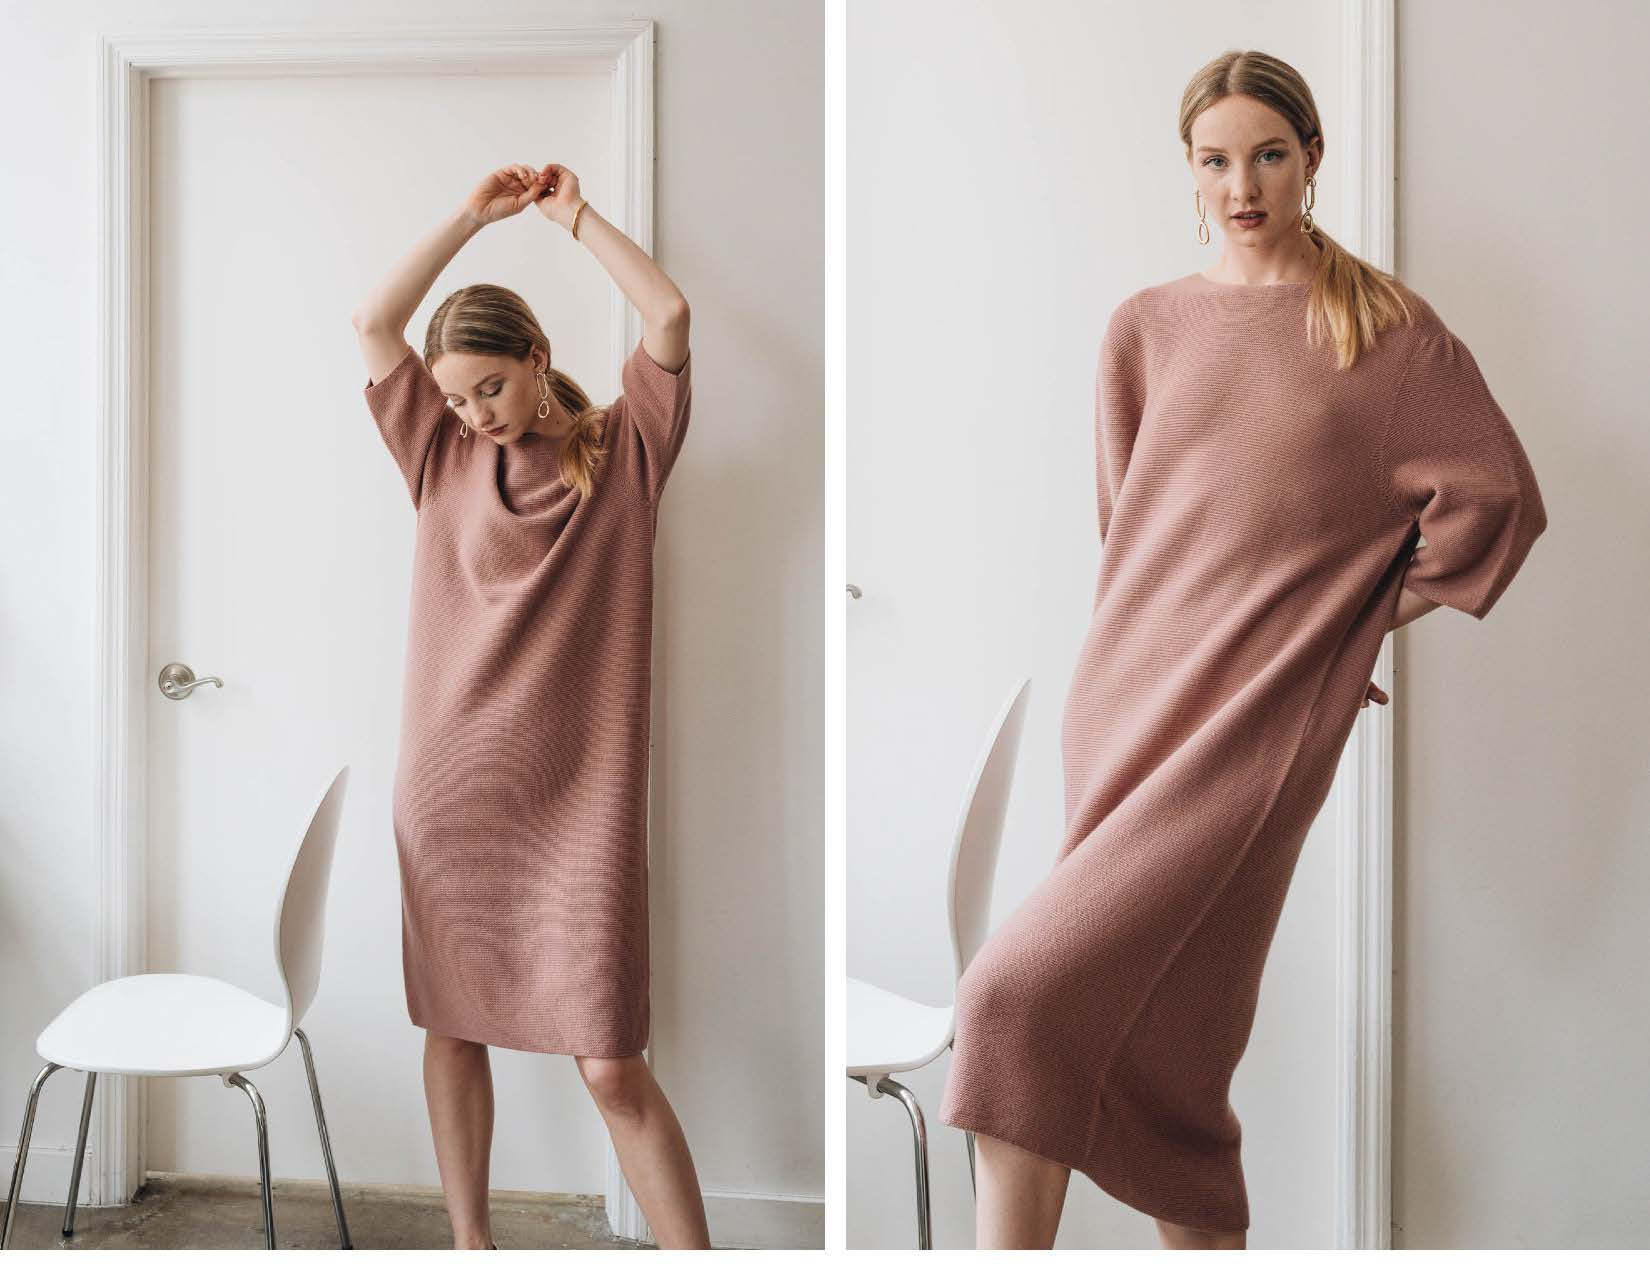 ELMNTL NYC Sustainable Fashion Sweater Dress